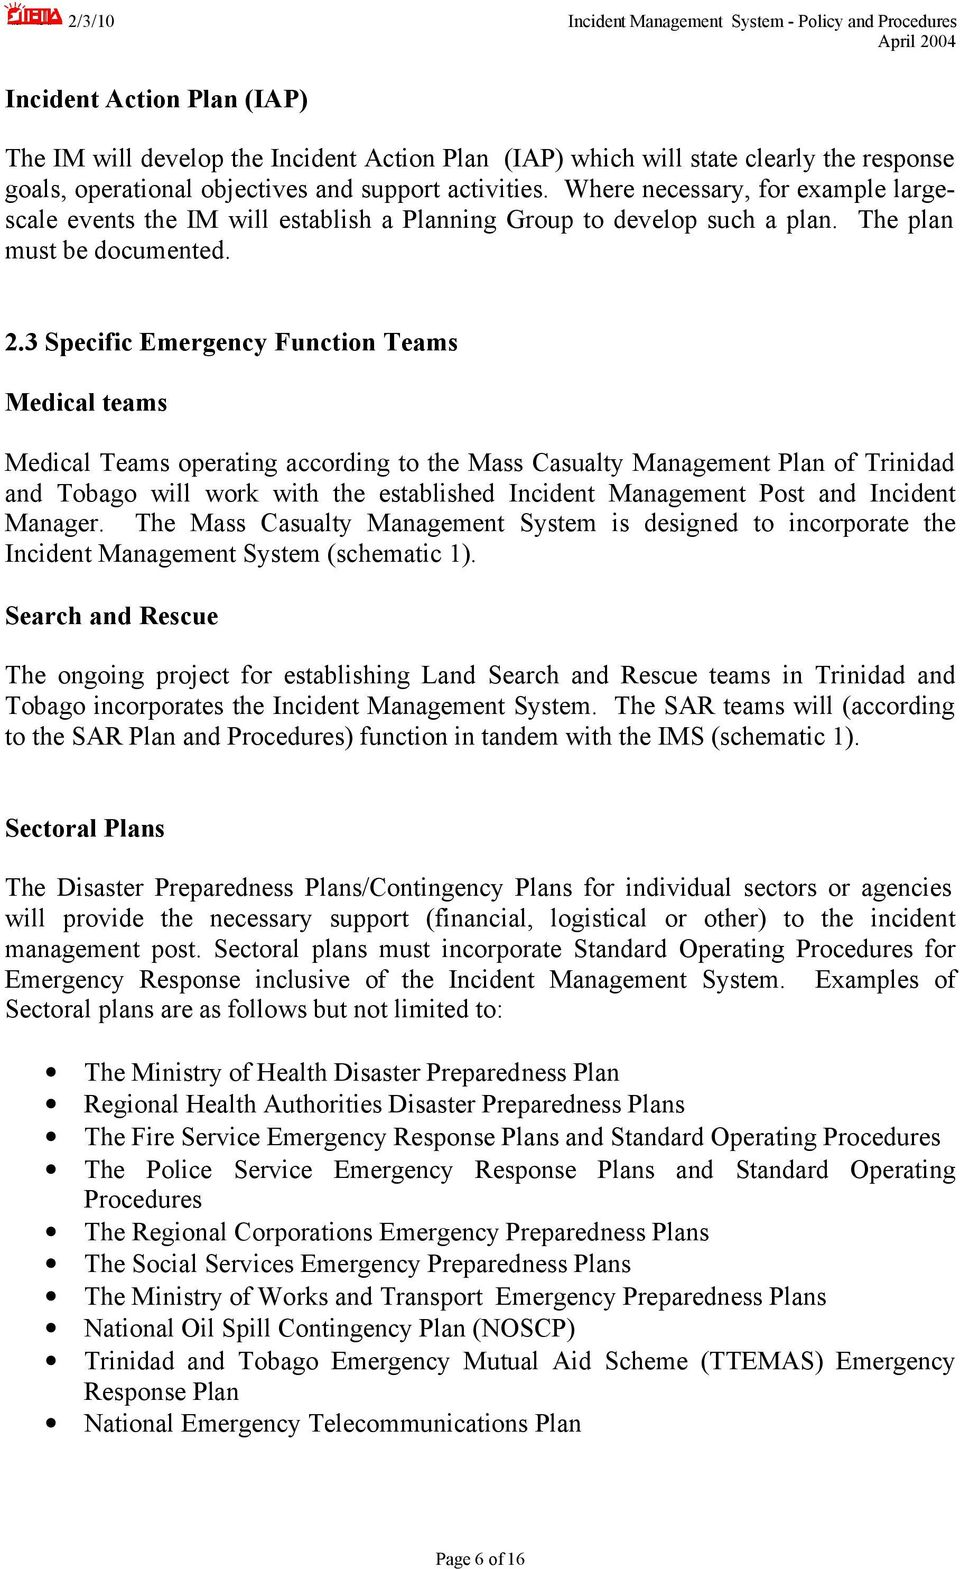 3 Specific Emergency Function Teams Medical teams Medical Teams operating according to the Mass Casualty Management Plan of Trinidad and Tobago will work with the established Incident Management Post